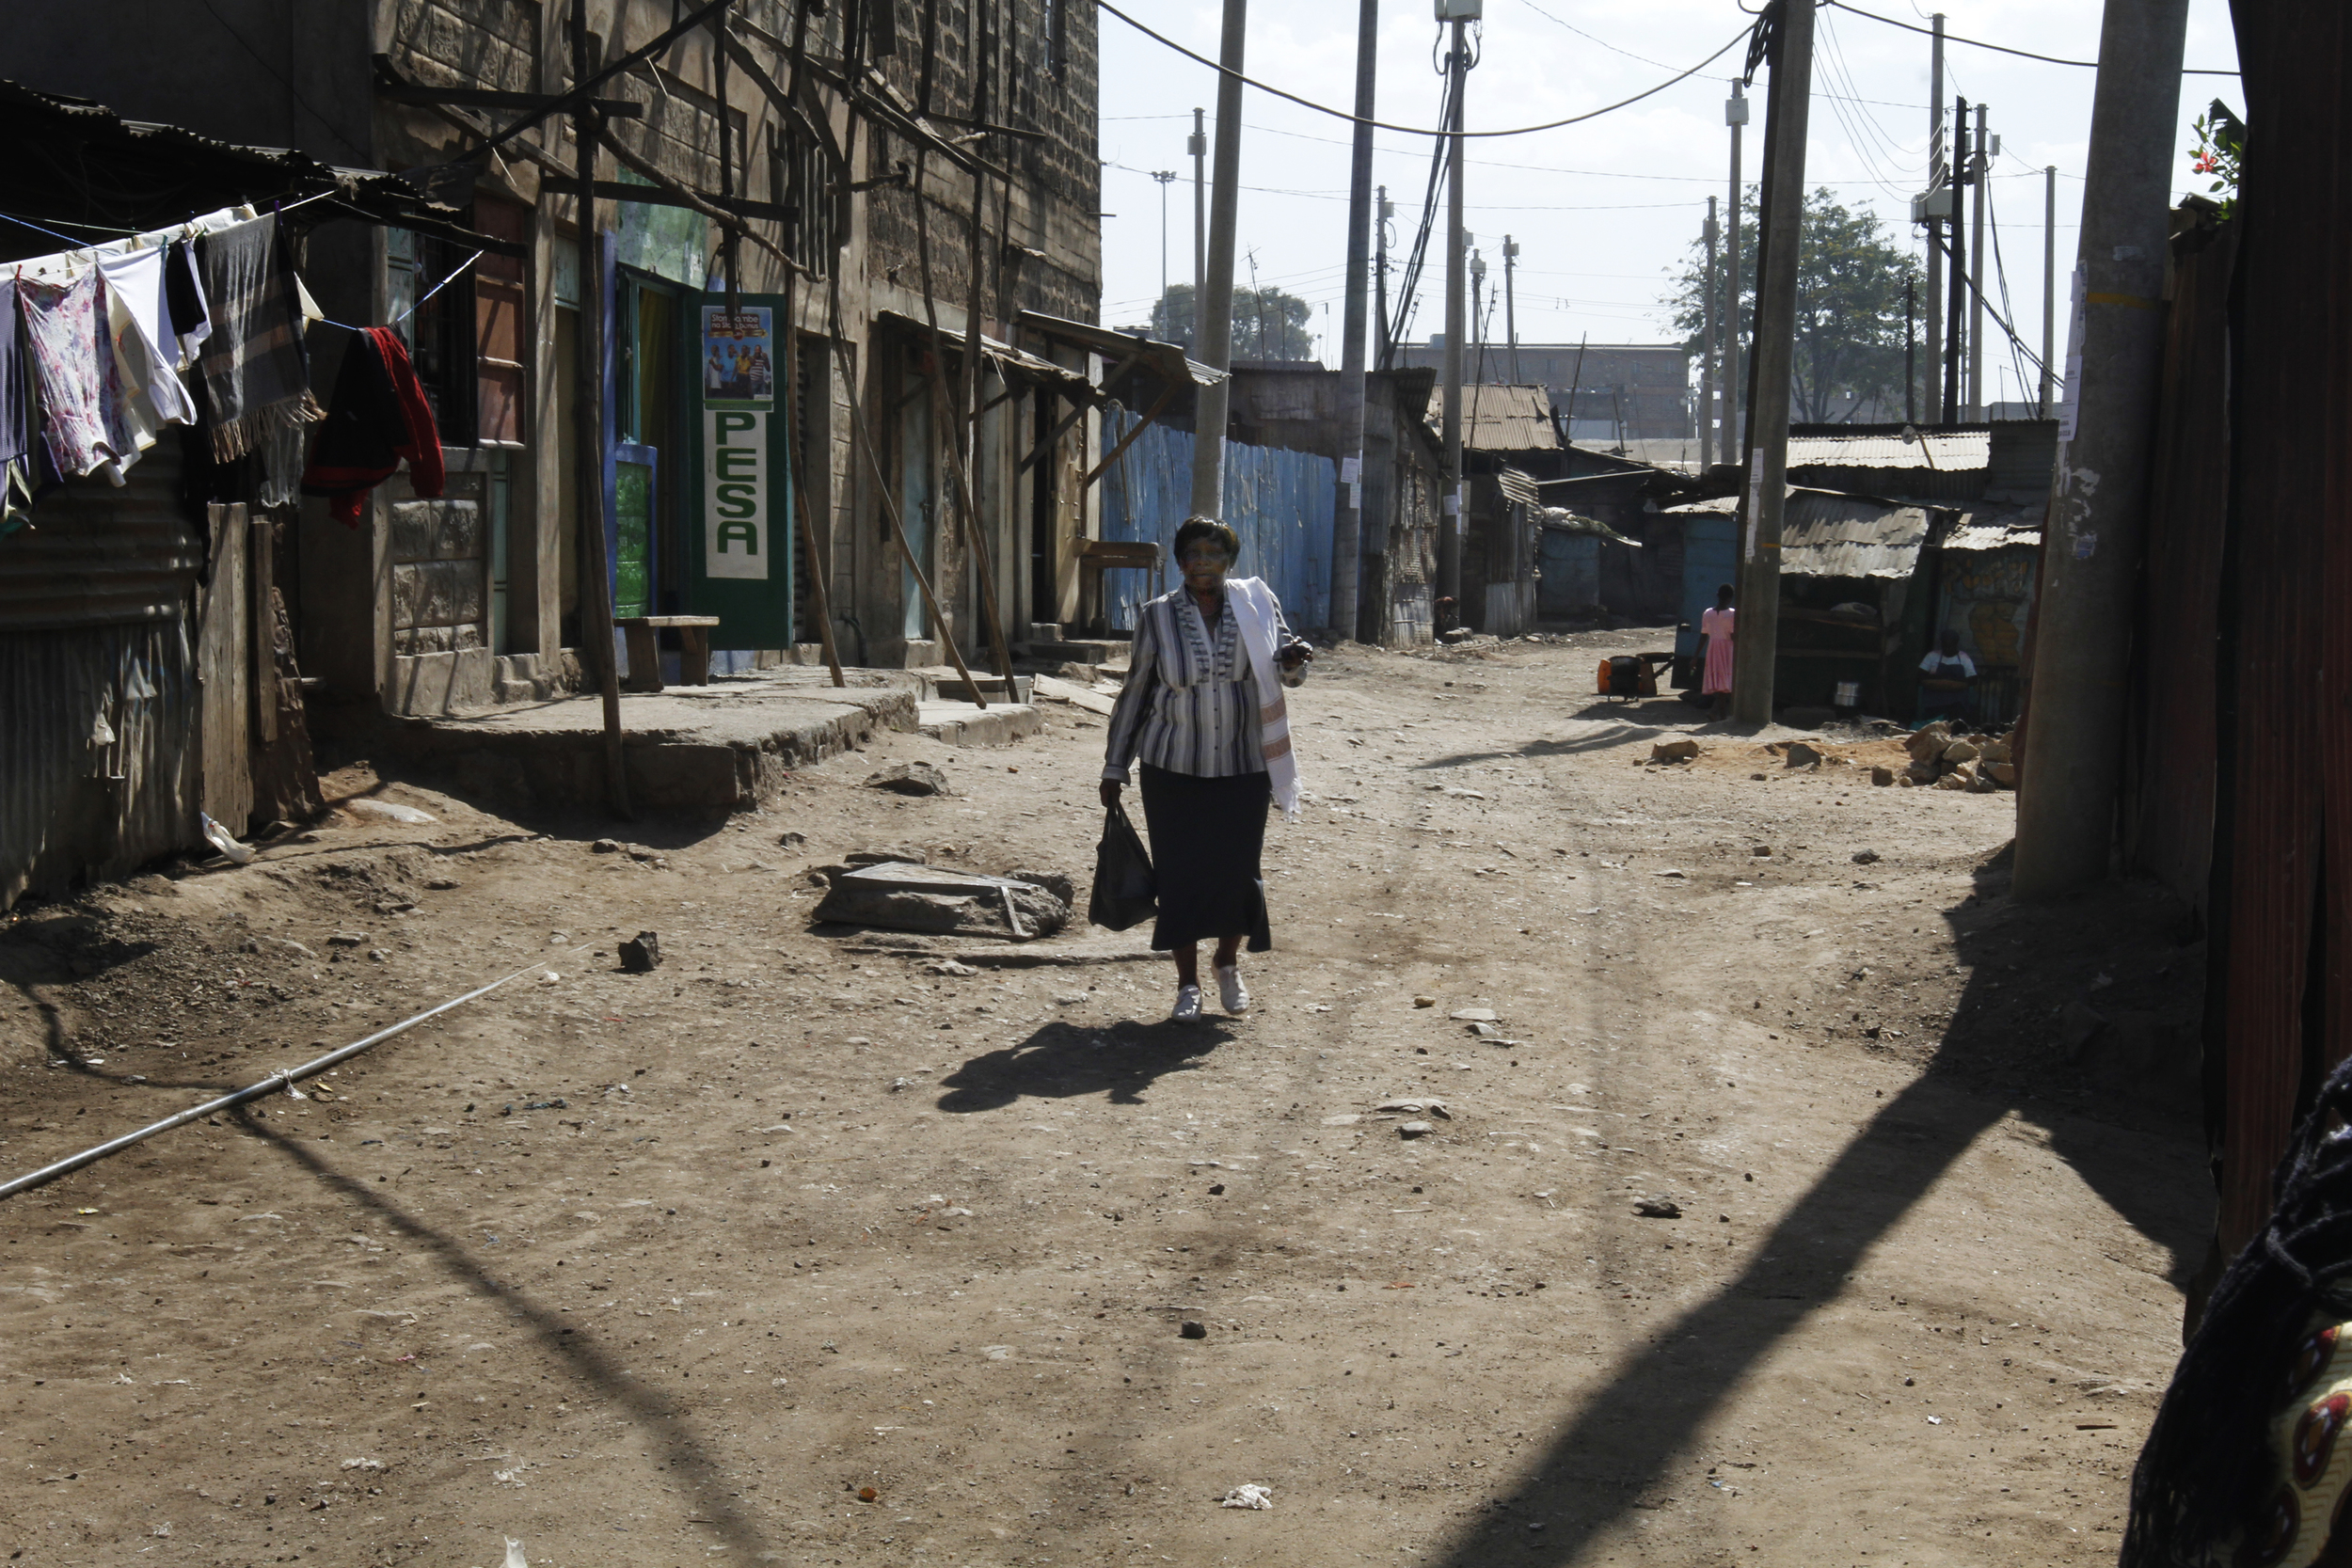 Rosemary Awuor who has breat cancer walks back to her home in Nairobis Mathare slum after a visit to the Hospital of 27th August 2015 copy.jpg